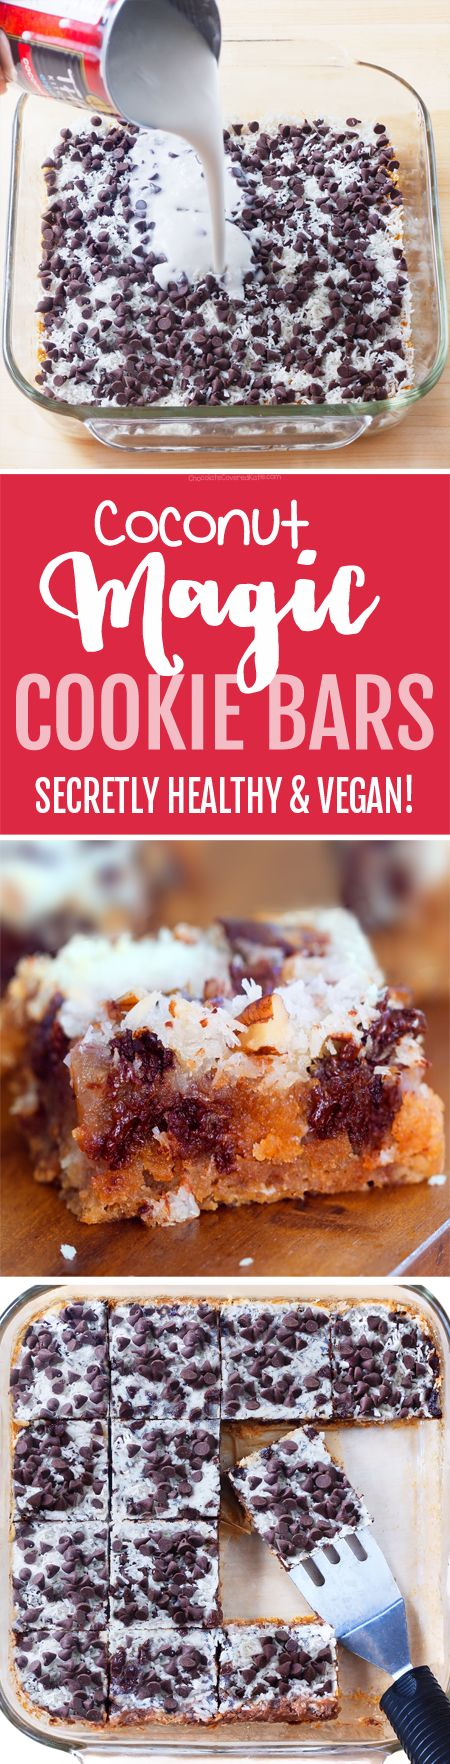 Ooey Gooey Chocolate Chip Coconut Magic Bars!